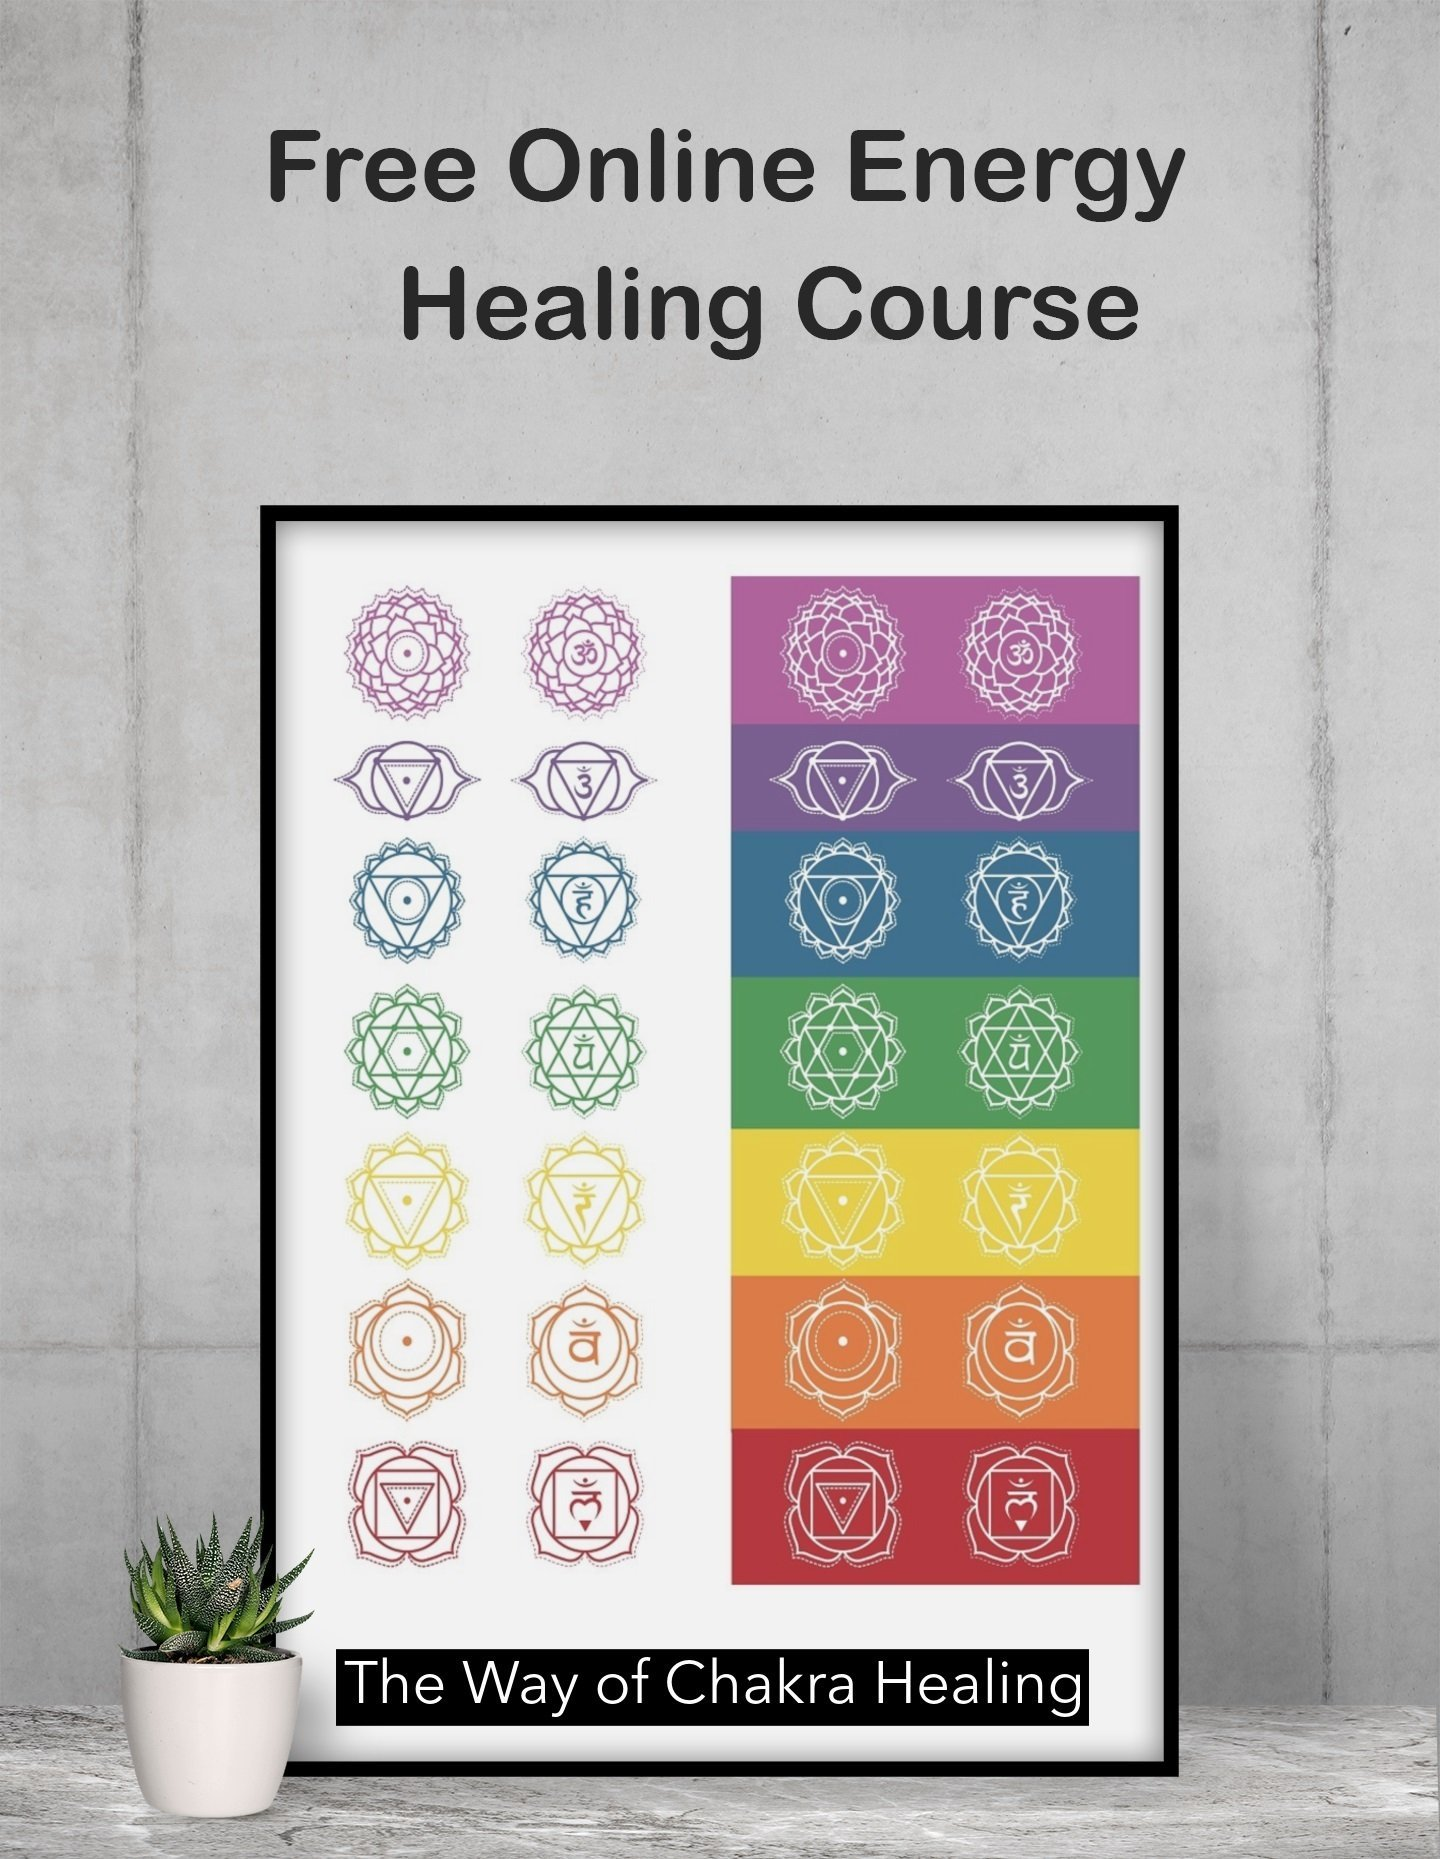 free energy healing courses